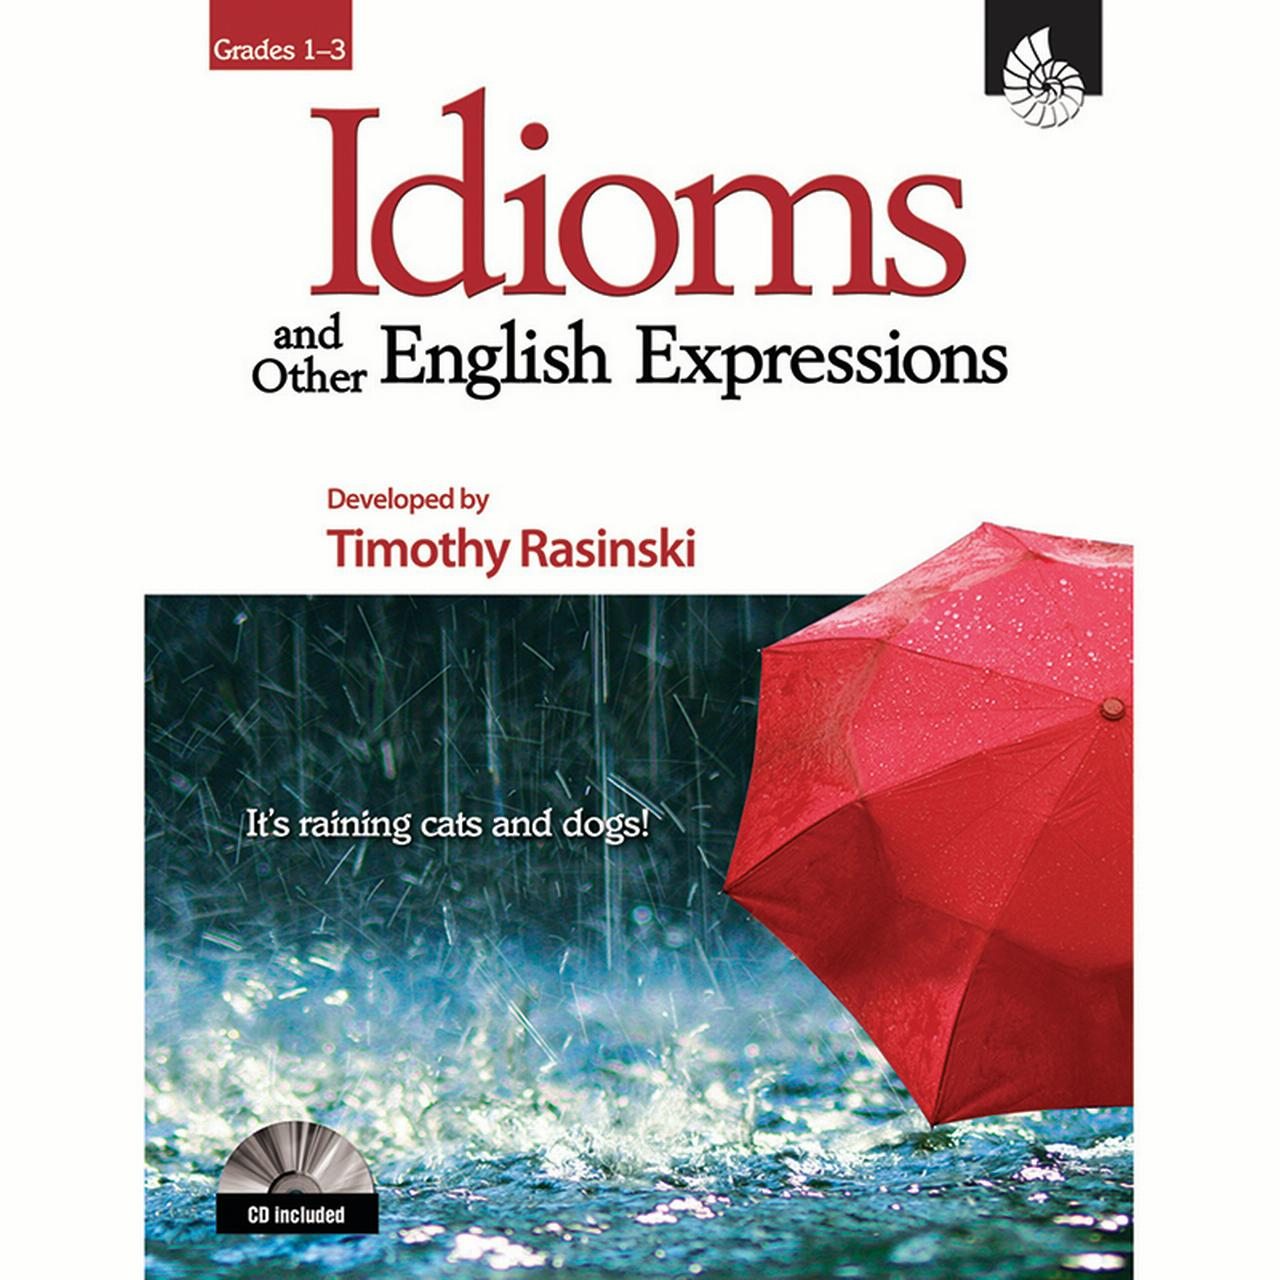 Idioms and Other English Expressions Grades 1-3 (Grades 1-3)